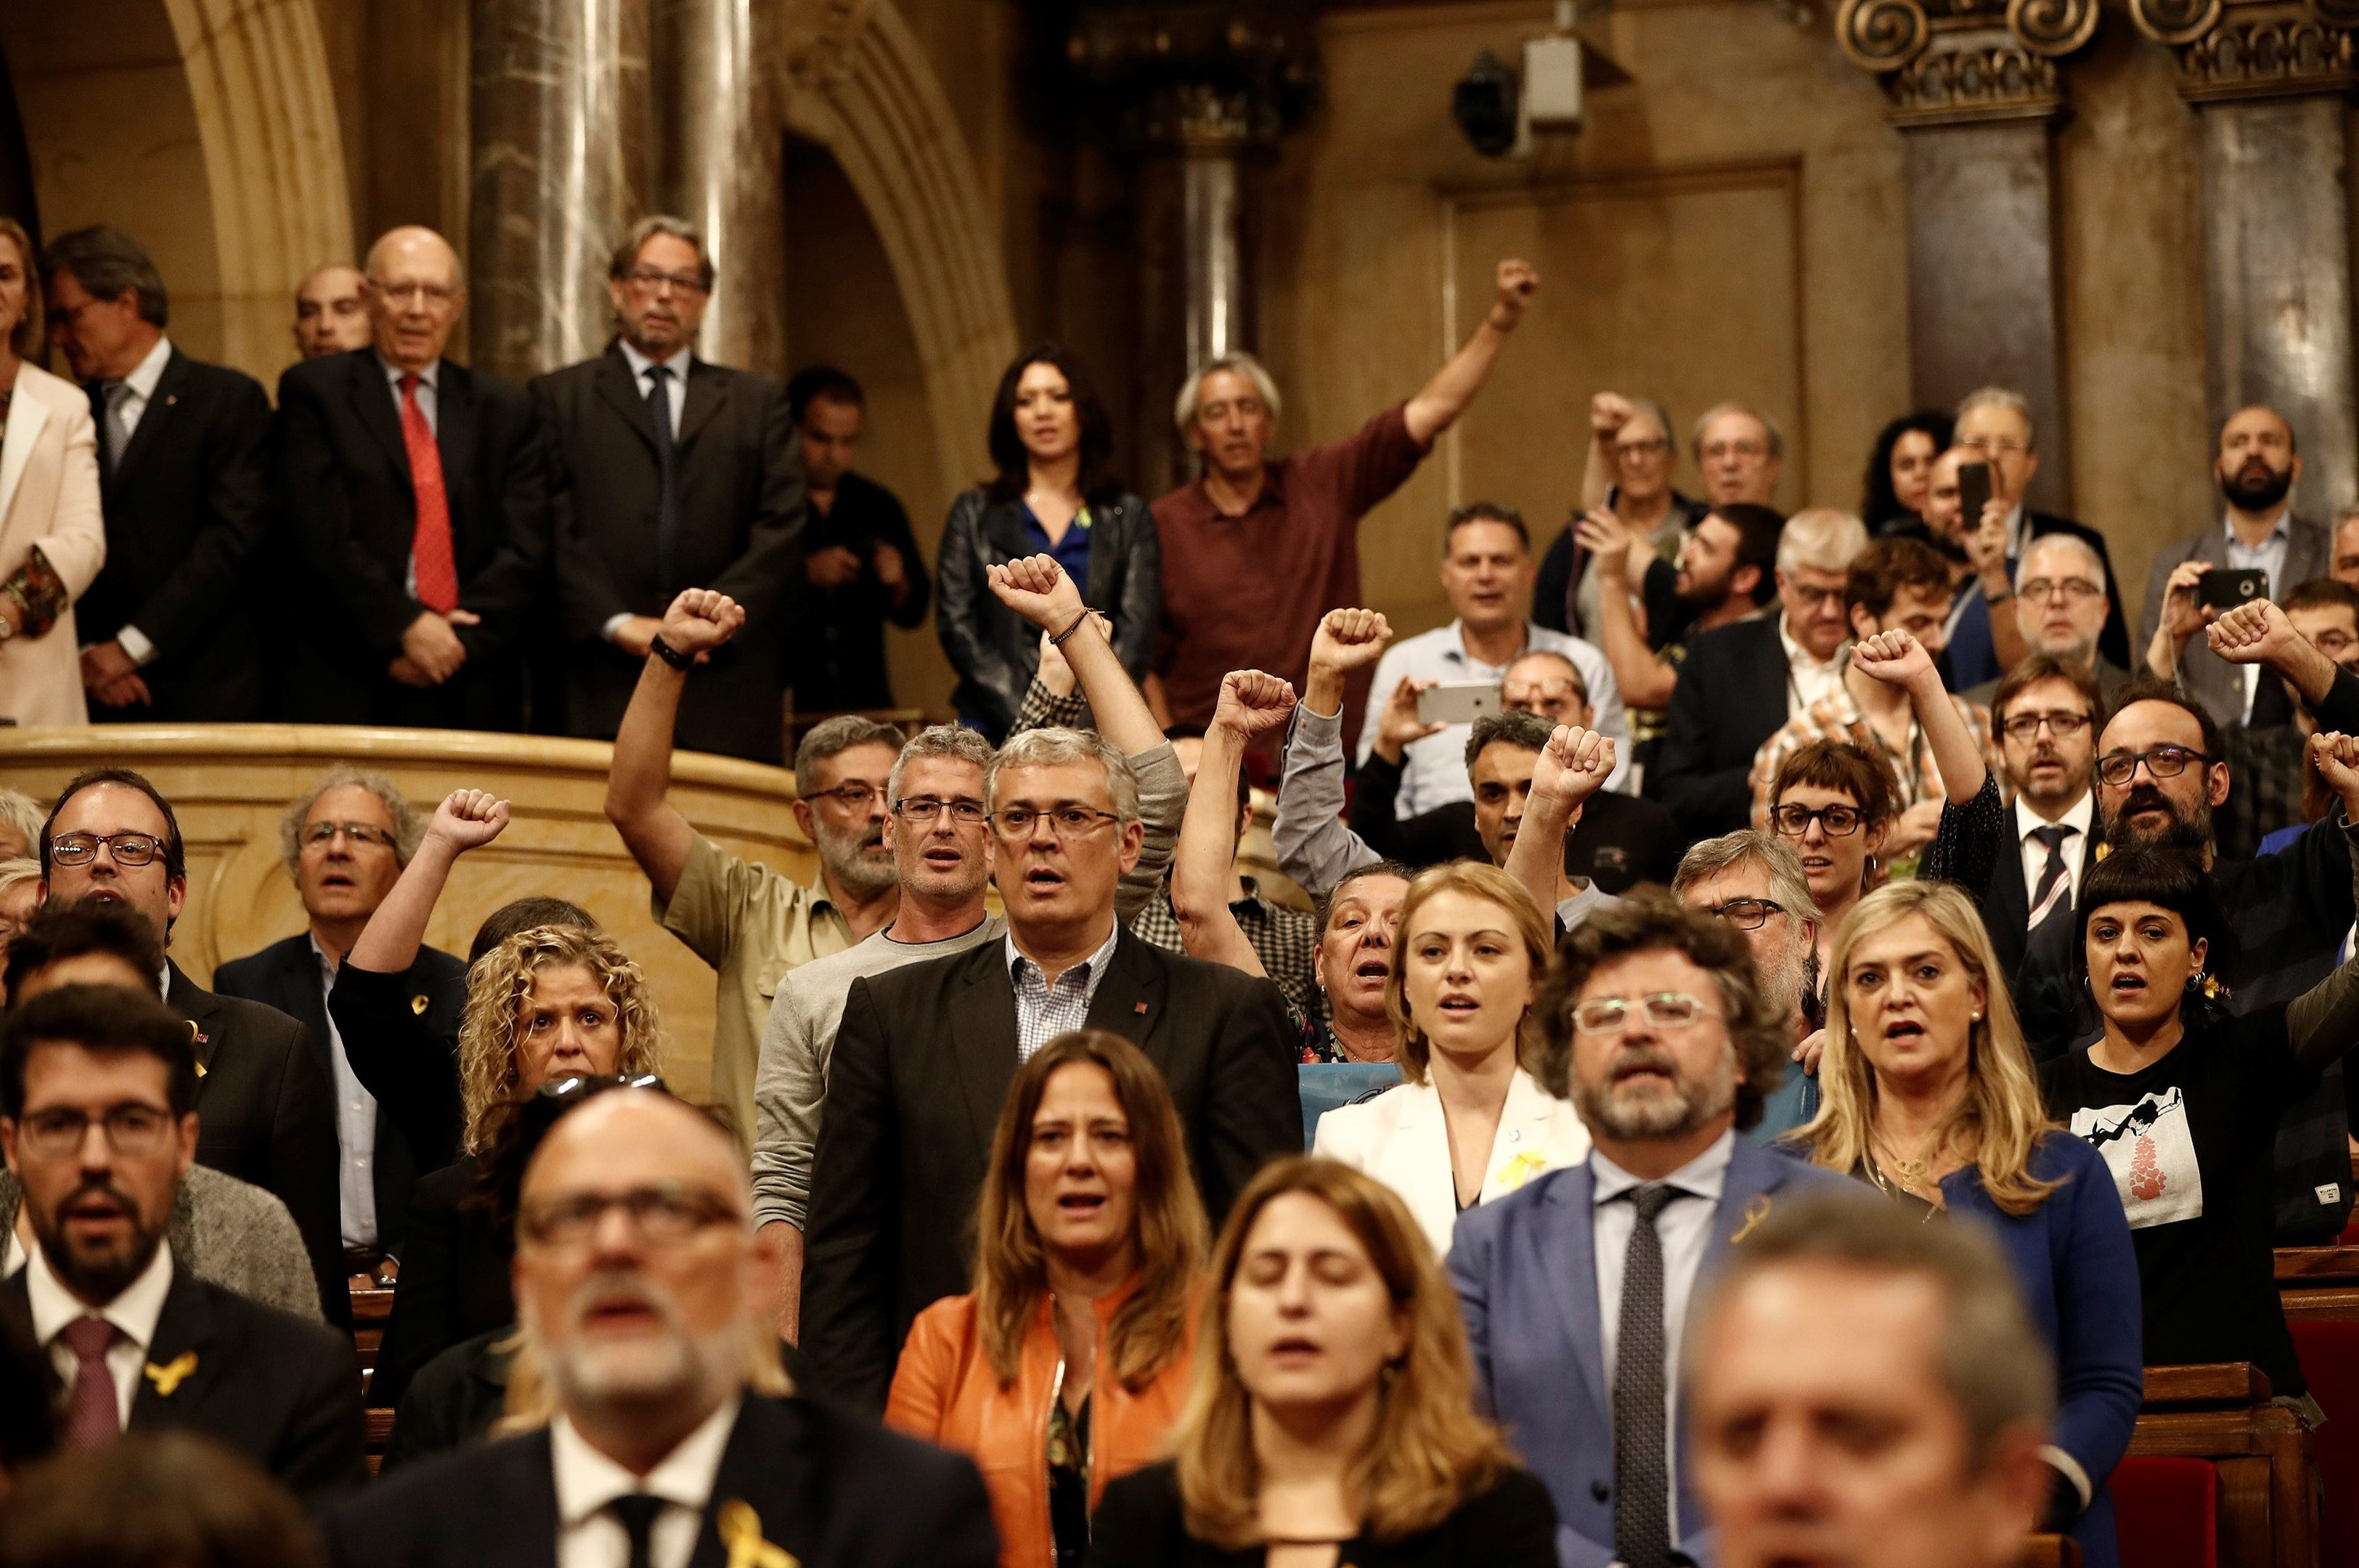 Deputies of Catalonian Parliament, who support the independence of Catalonia, shout slogans after Catalonian Parliament declared independence  (Burak Akbulut/Anadolu Agency/Getty Images)